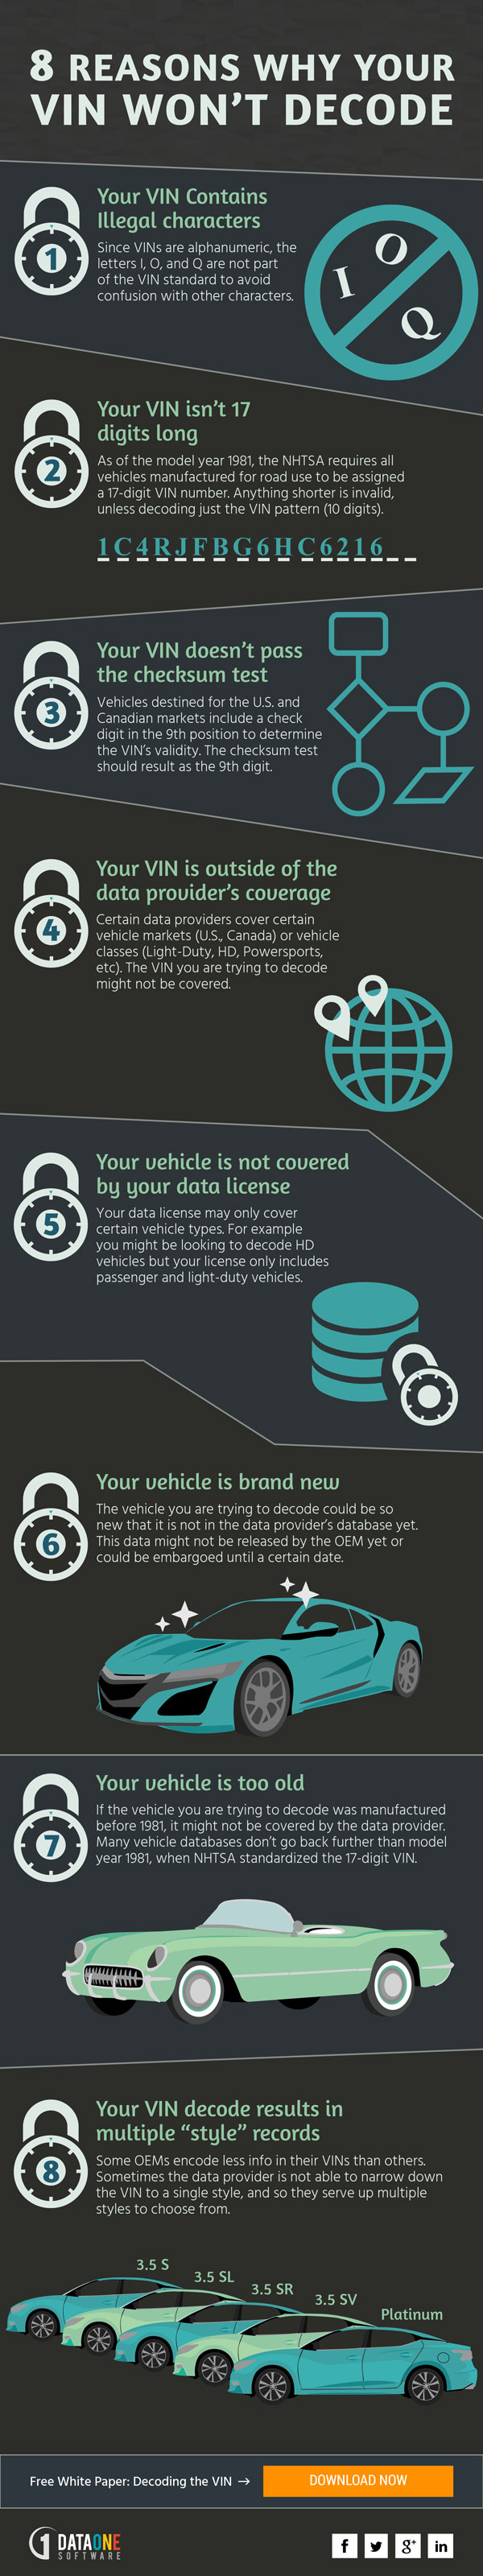 8 Reasons Why Your VIN Won't Decode [w/ Infographic] | DataOne Software